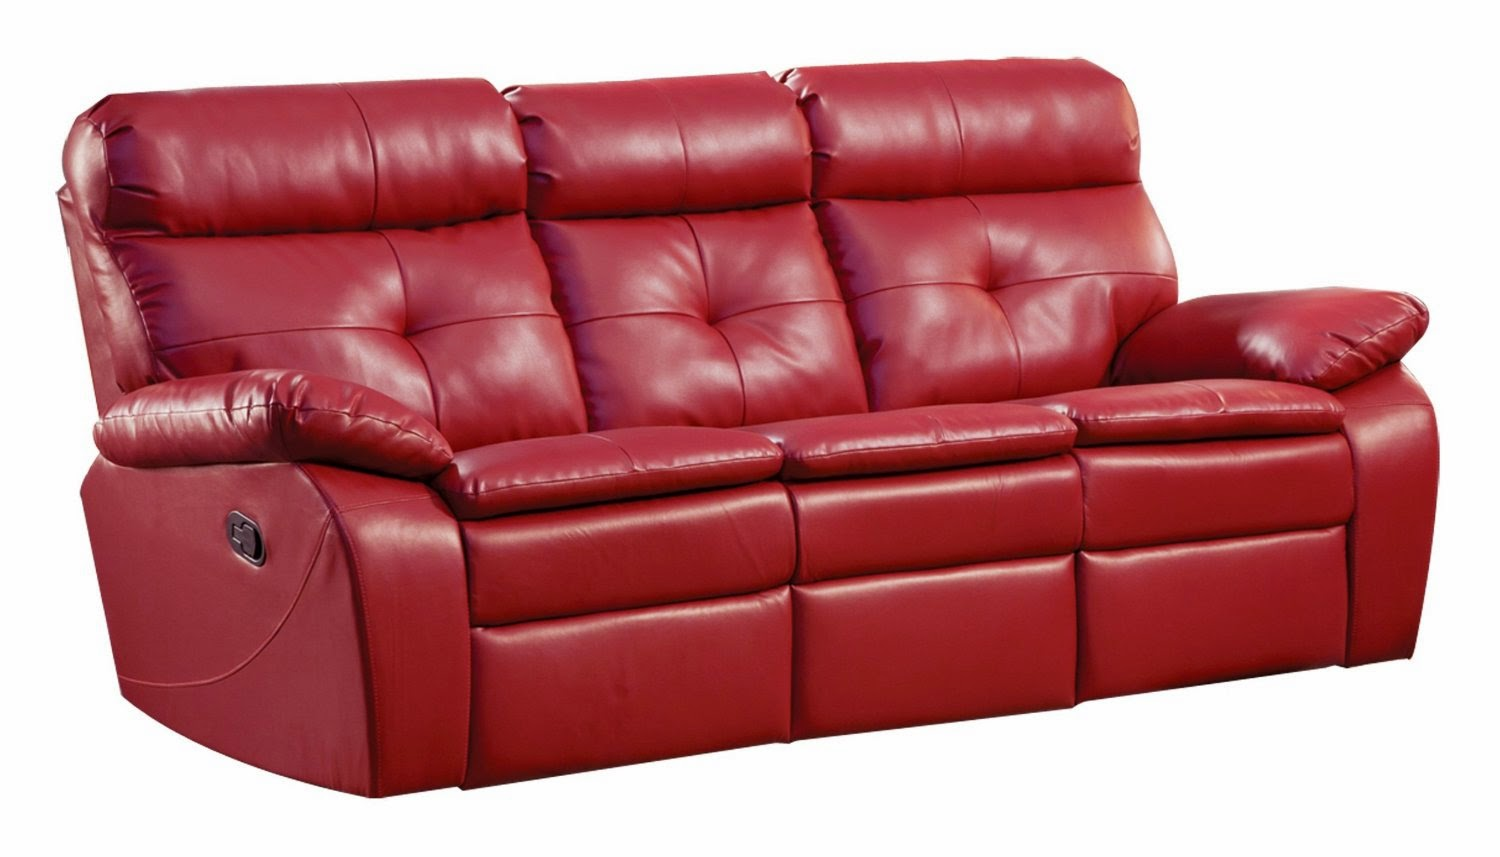 Top Seller Reclining And Recliner Sofa Loveseat: Red ...